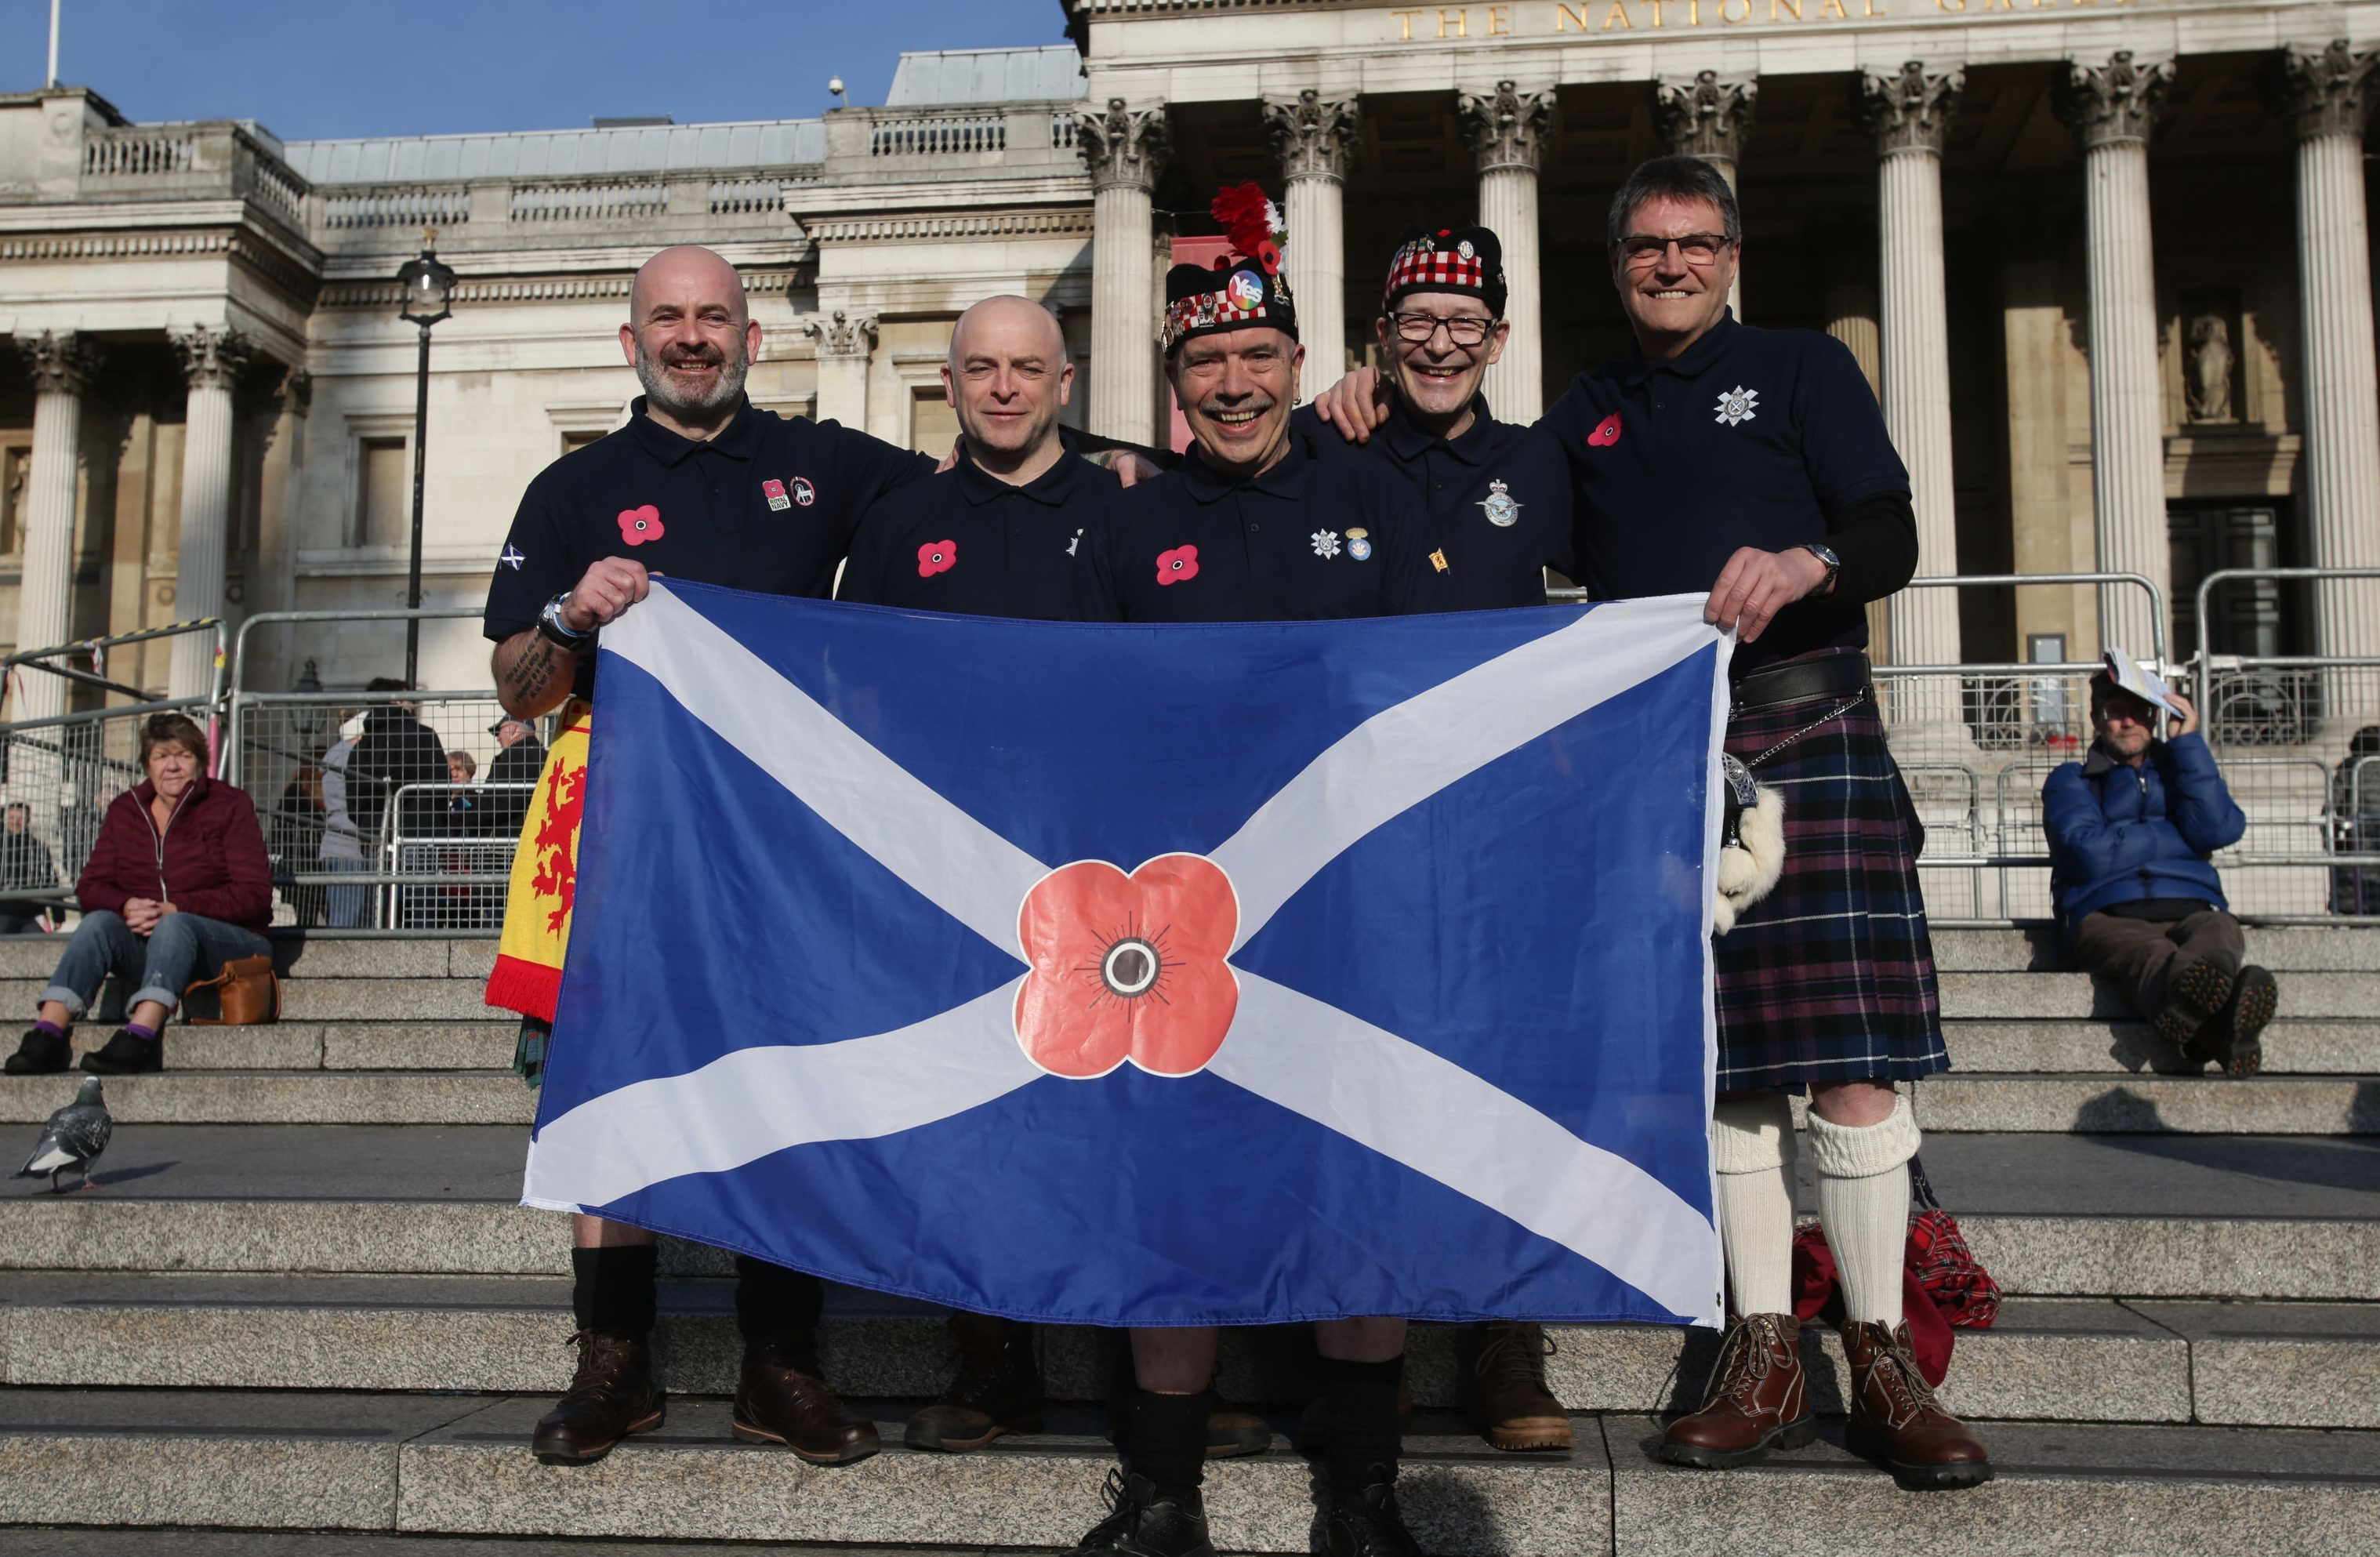 Some of the Scots who were at Trafalgar Square to show their respects.